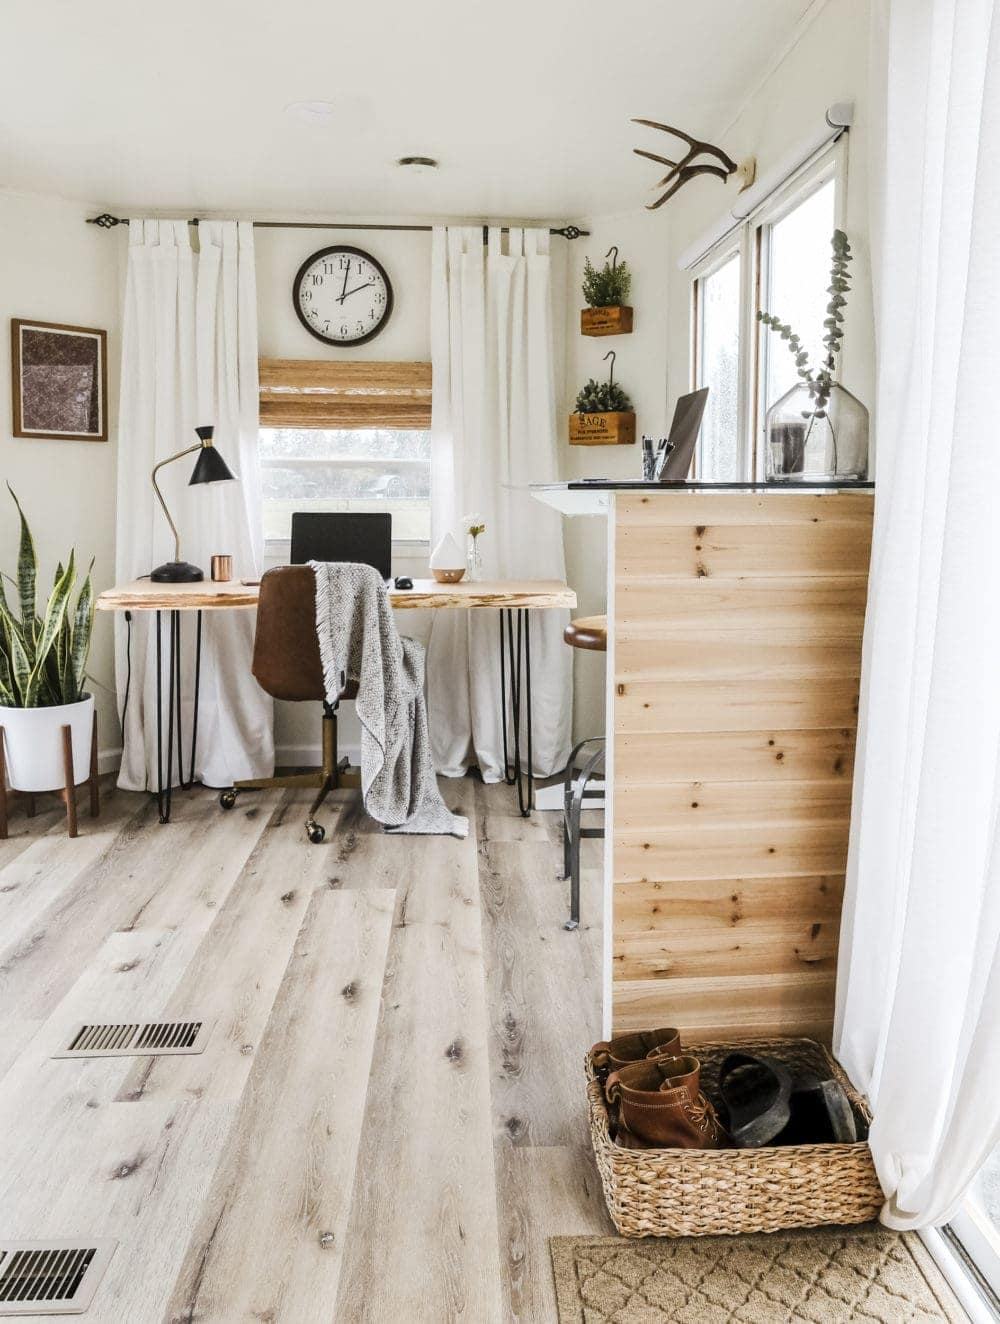 View of a home office next to an entry way with cedar planks and a shoe basket